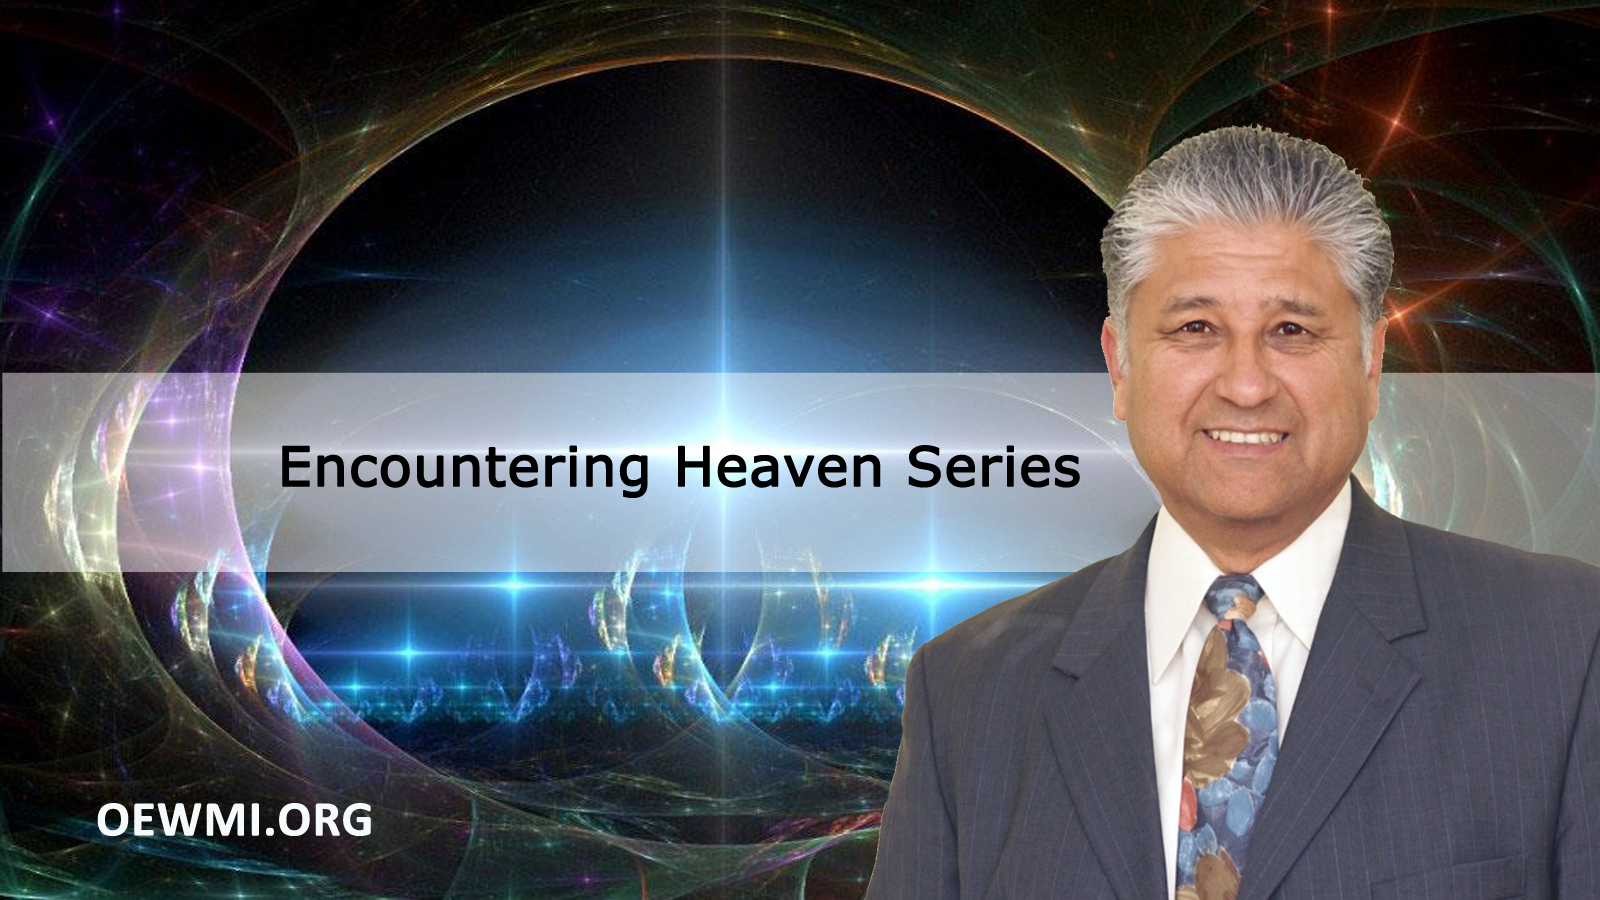 Encountering Heaven